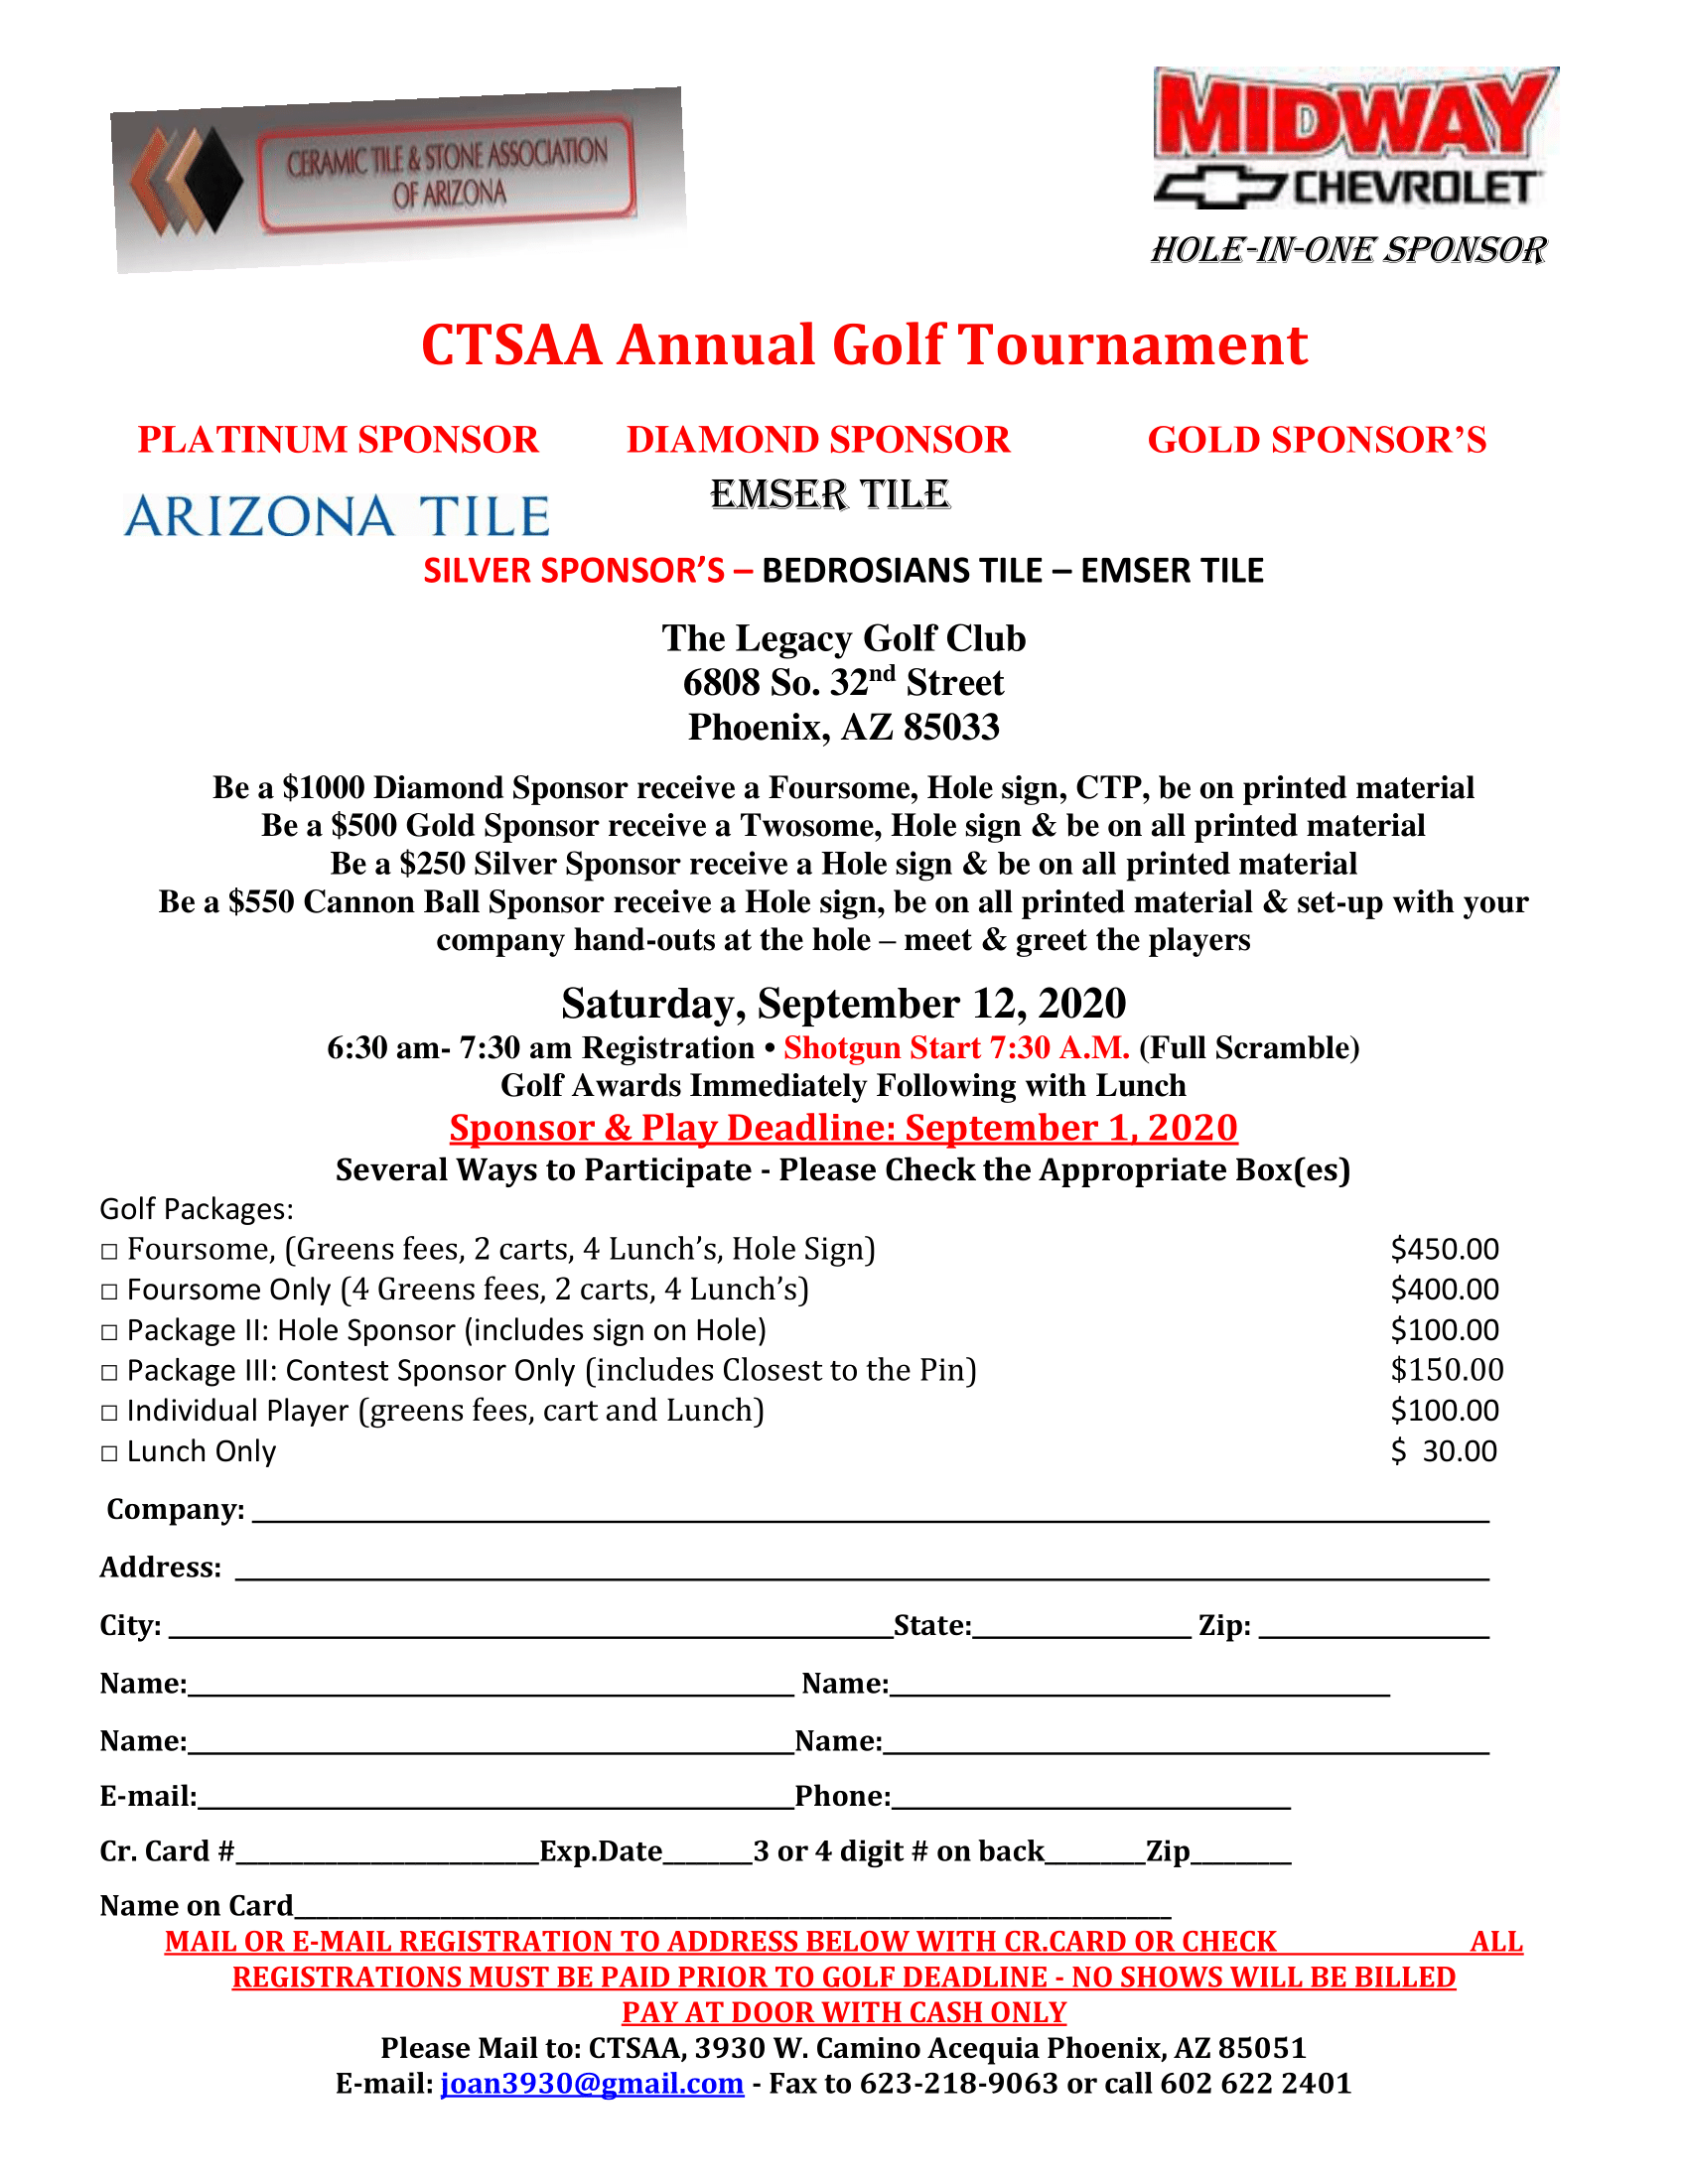 2020 CTSAA Annual Golf Tournament @ The Legacy Golf Club